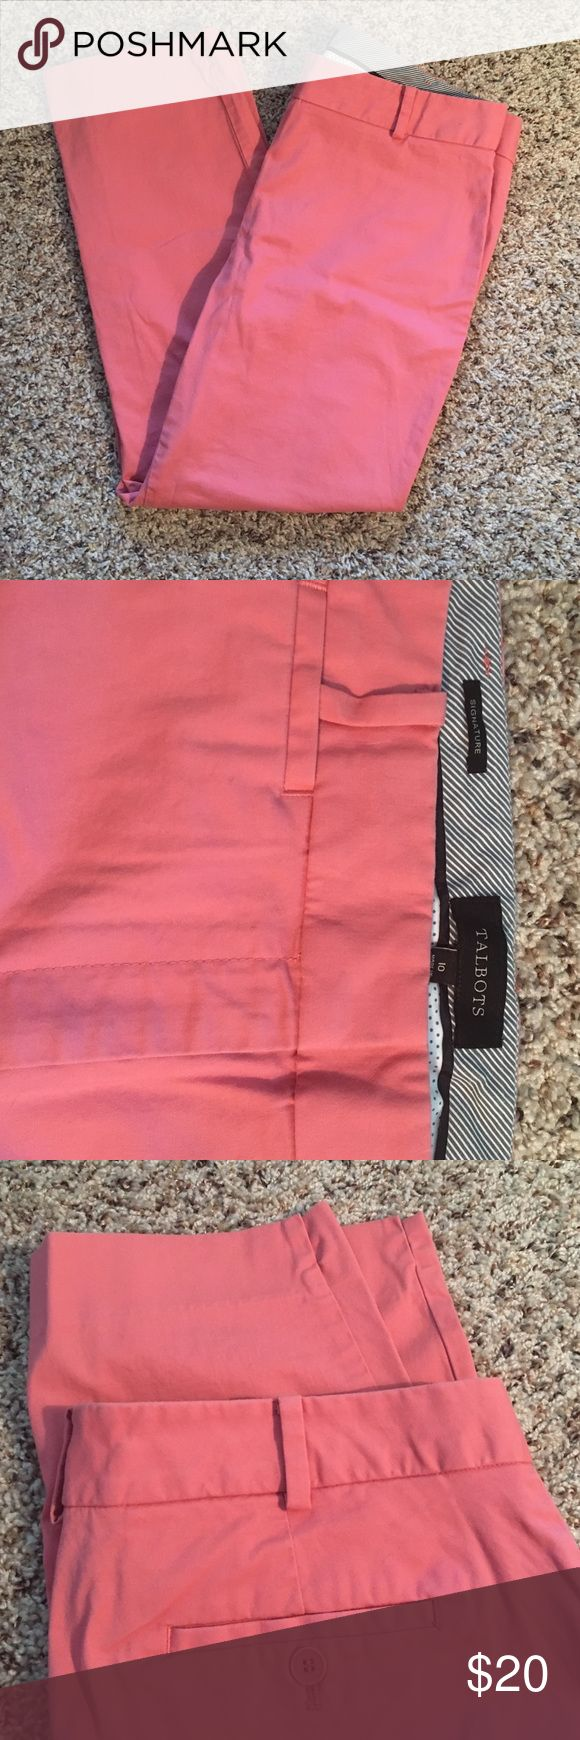 "Talbots Signature Salmon Pant EUC, size 10. 17"" waist, 25.5"" inseam. Salmon color. Talbots Pants Ankle & Cropped"